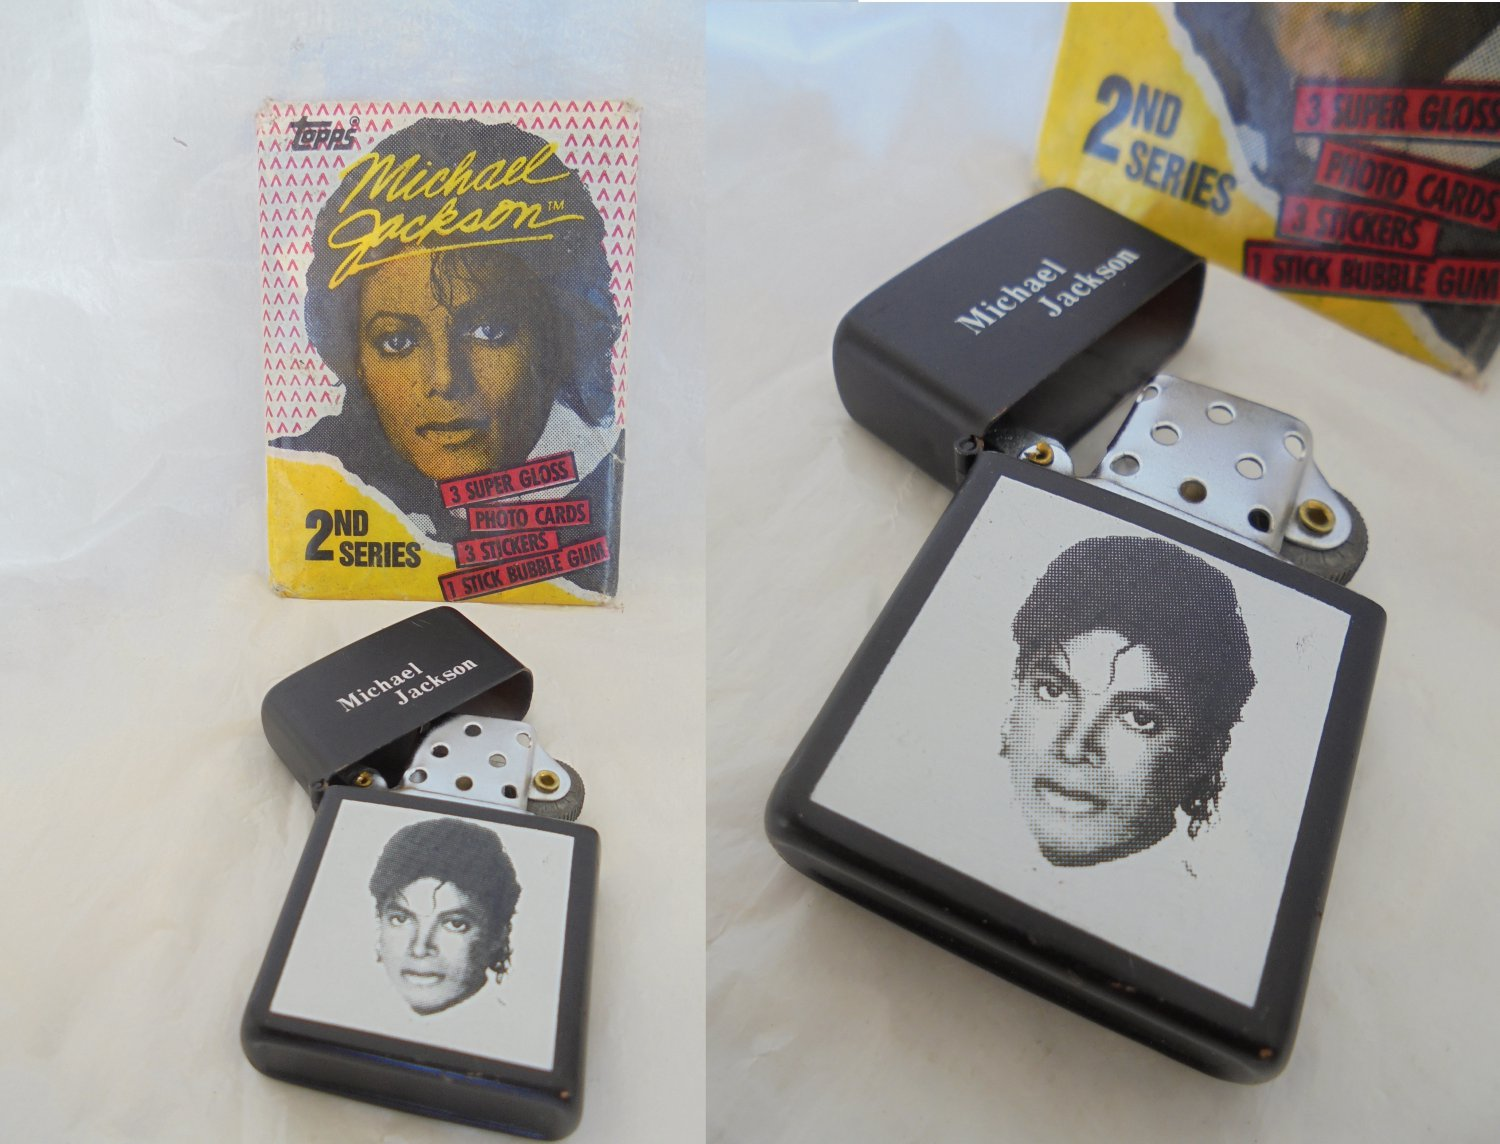 MICHAEL JACKSON Topps photo cards and bubble gum pack sealed with lighter 1980s